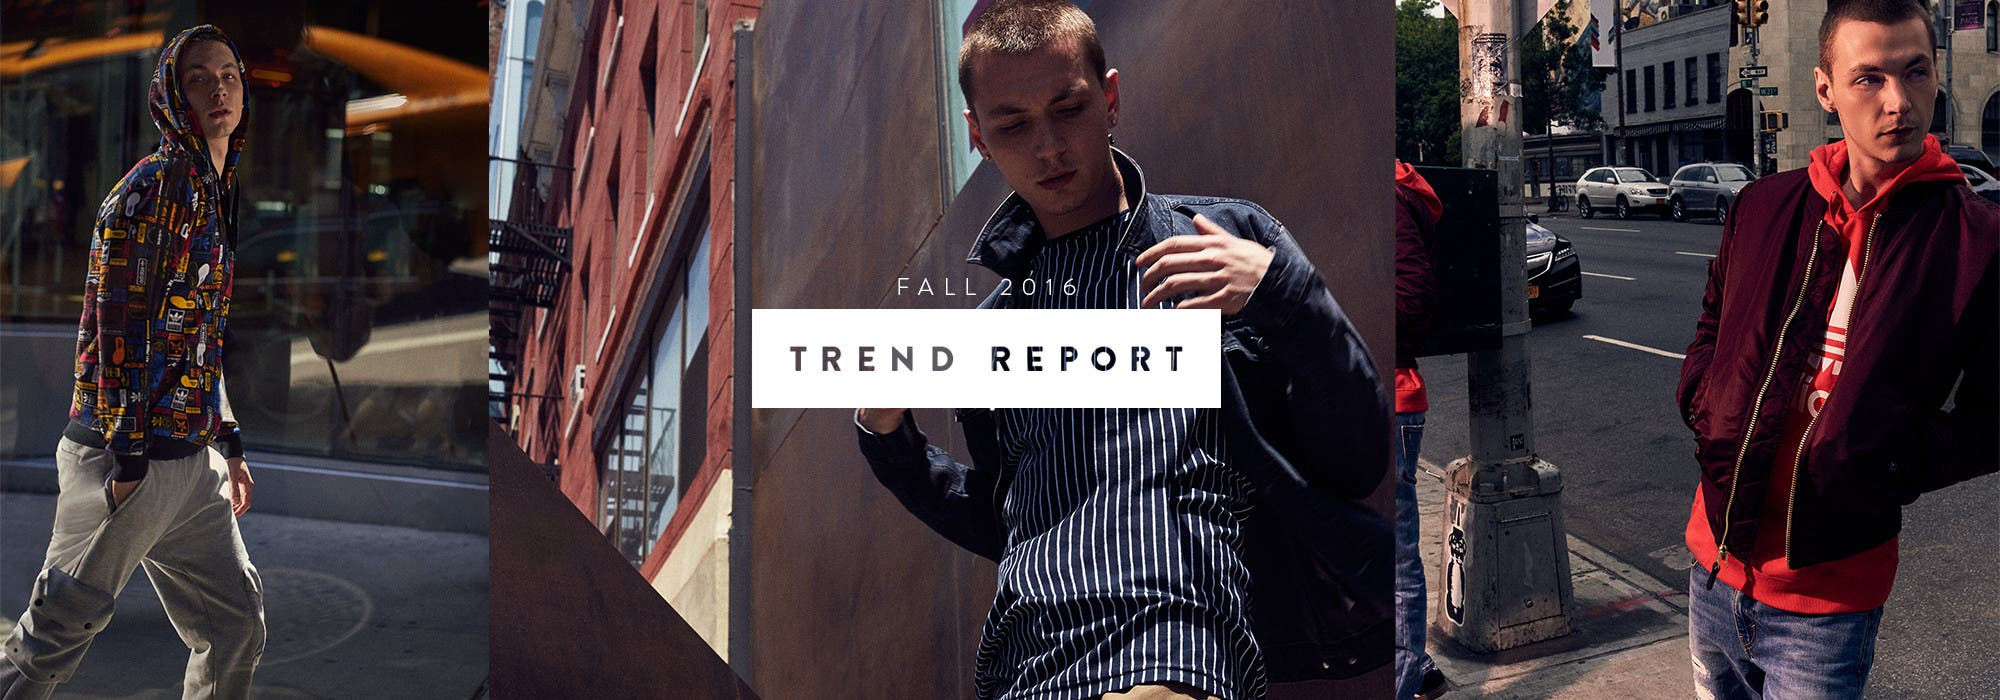 Fall 2016 men's trend report.